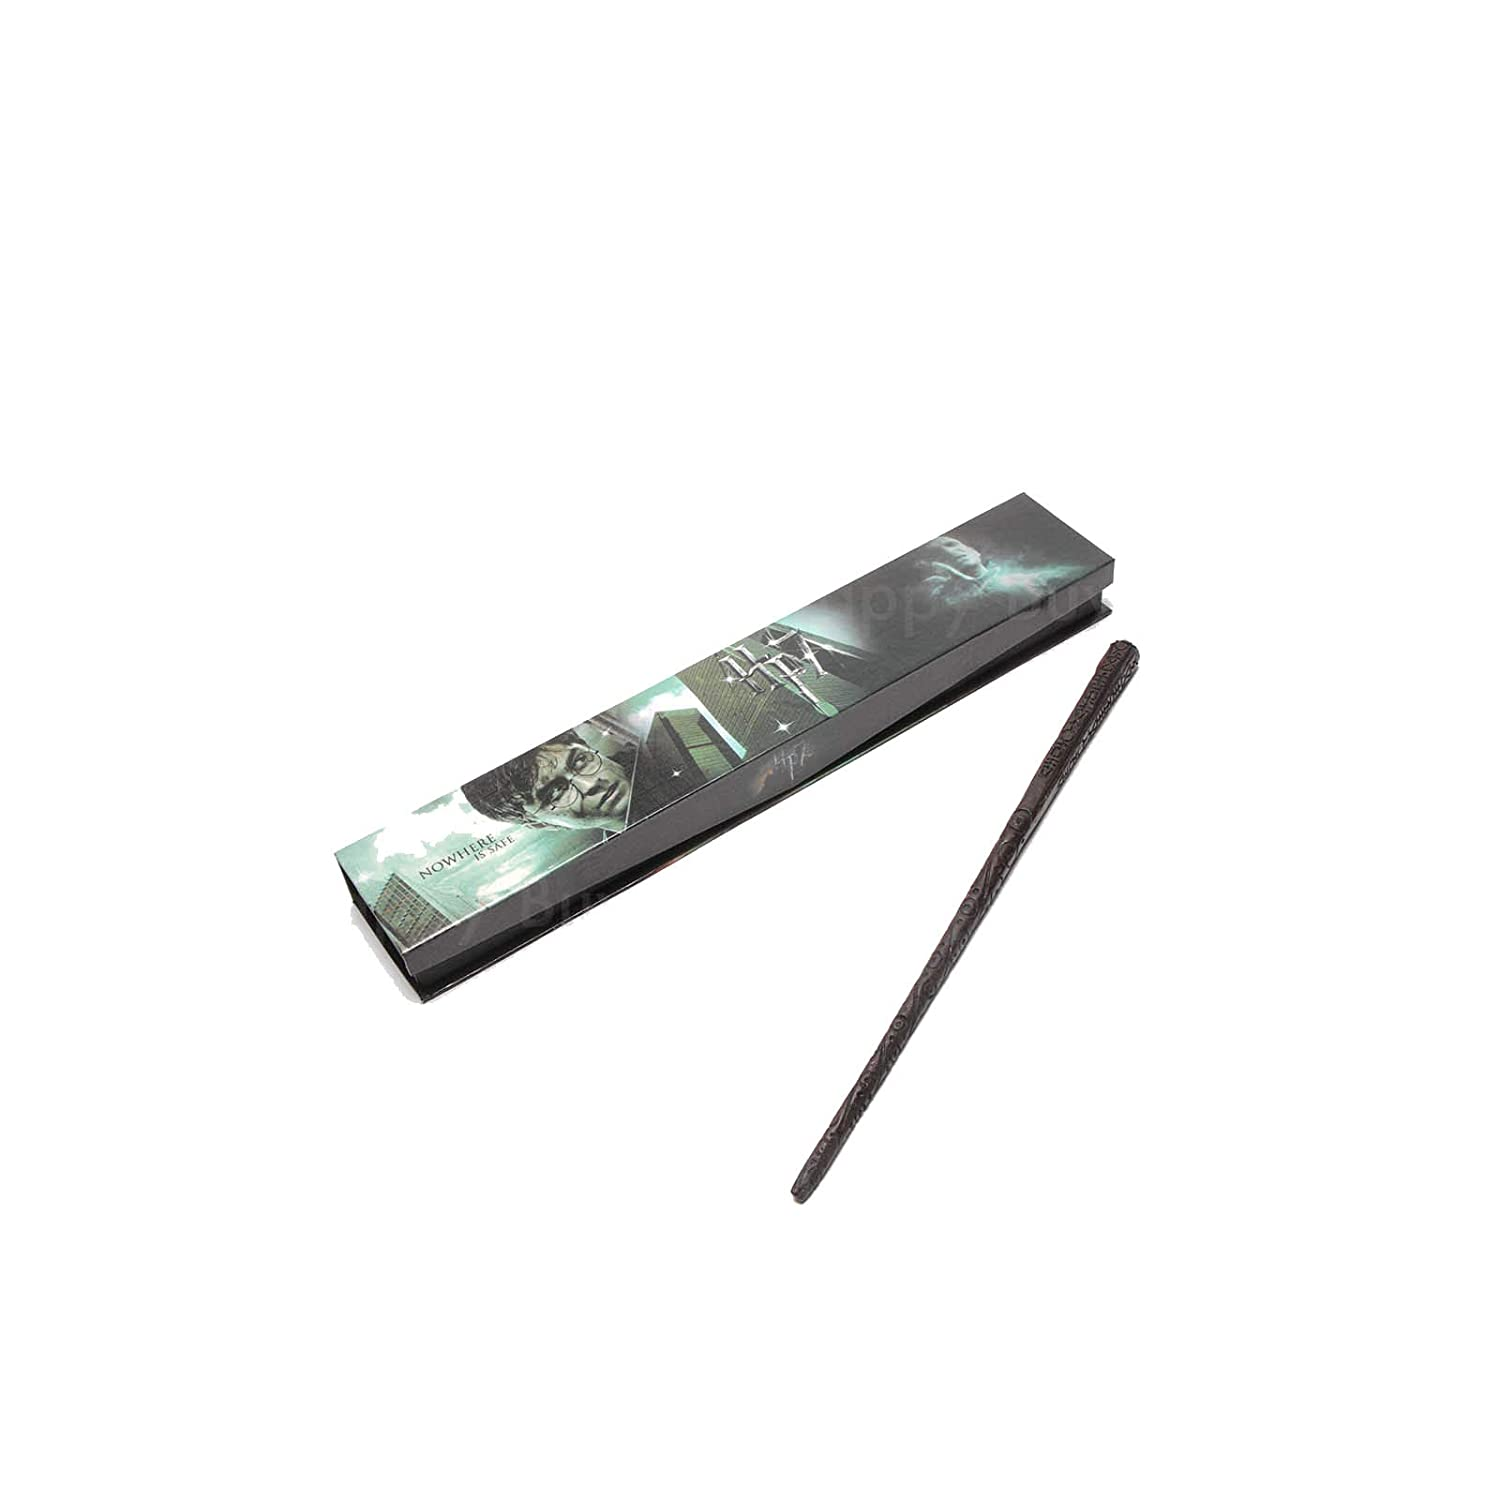 Joycorner Nouveau Harry Potter Sirius Black Réplique Magique Baguette Cosplay Chine